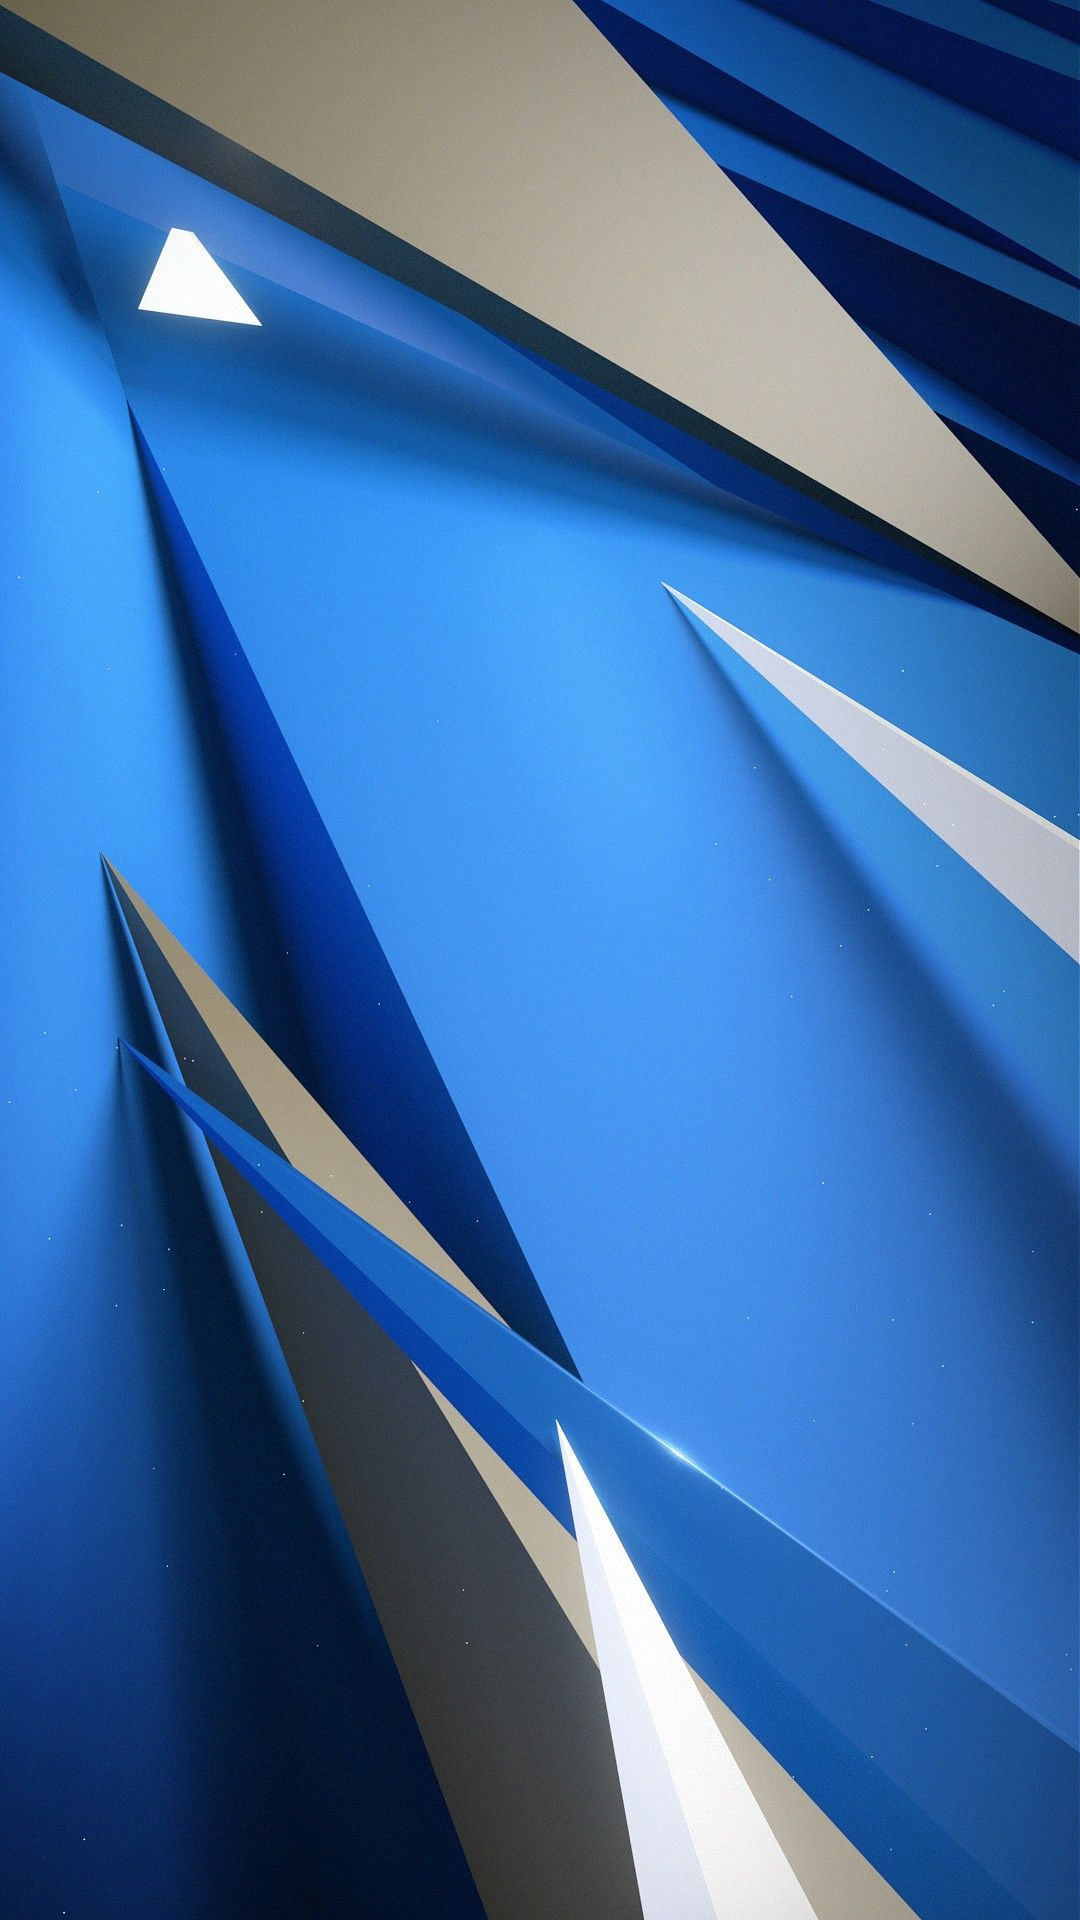 Sky Blue Abstract Wallpapers On Wallpaperdog